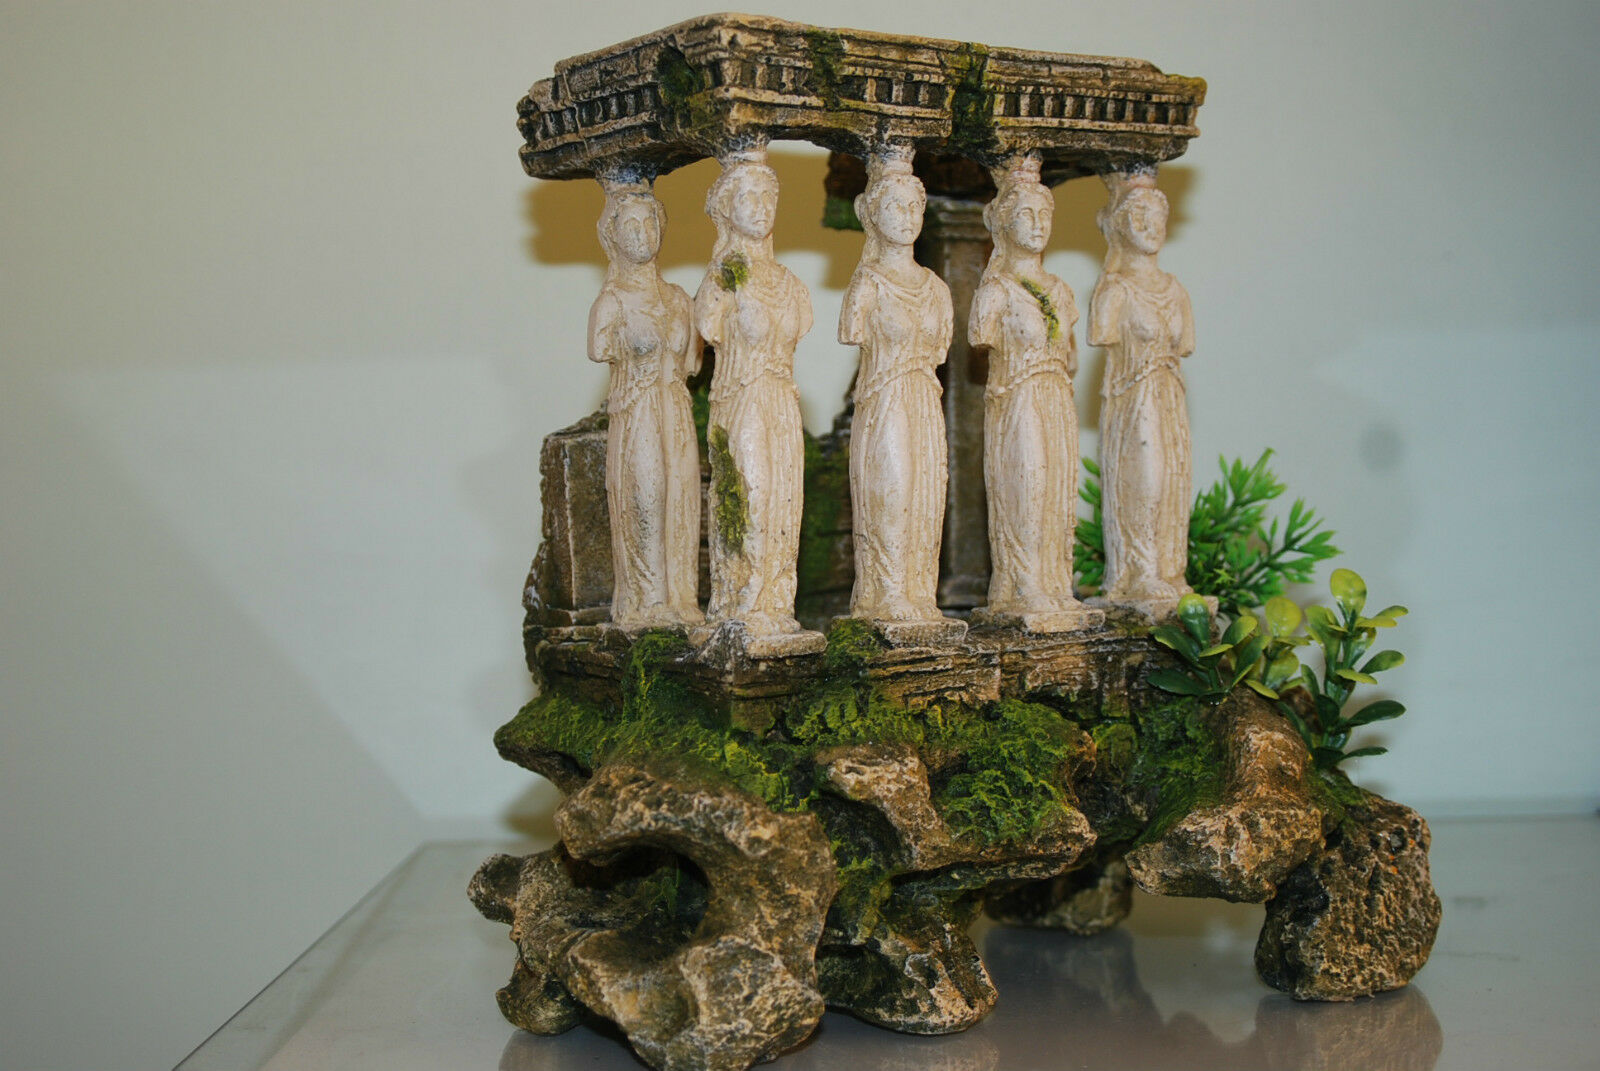 Stunning Aquarium Roman Ruin Temple With Maidens Columns 27 x 18 x 24 cms